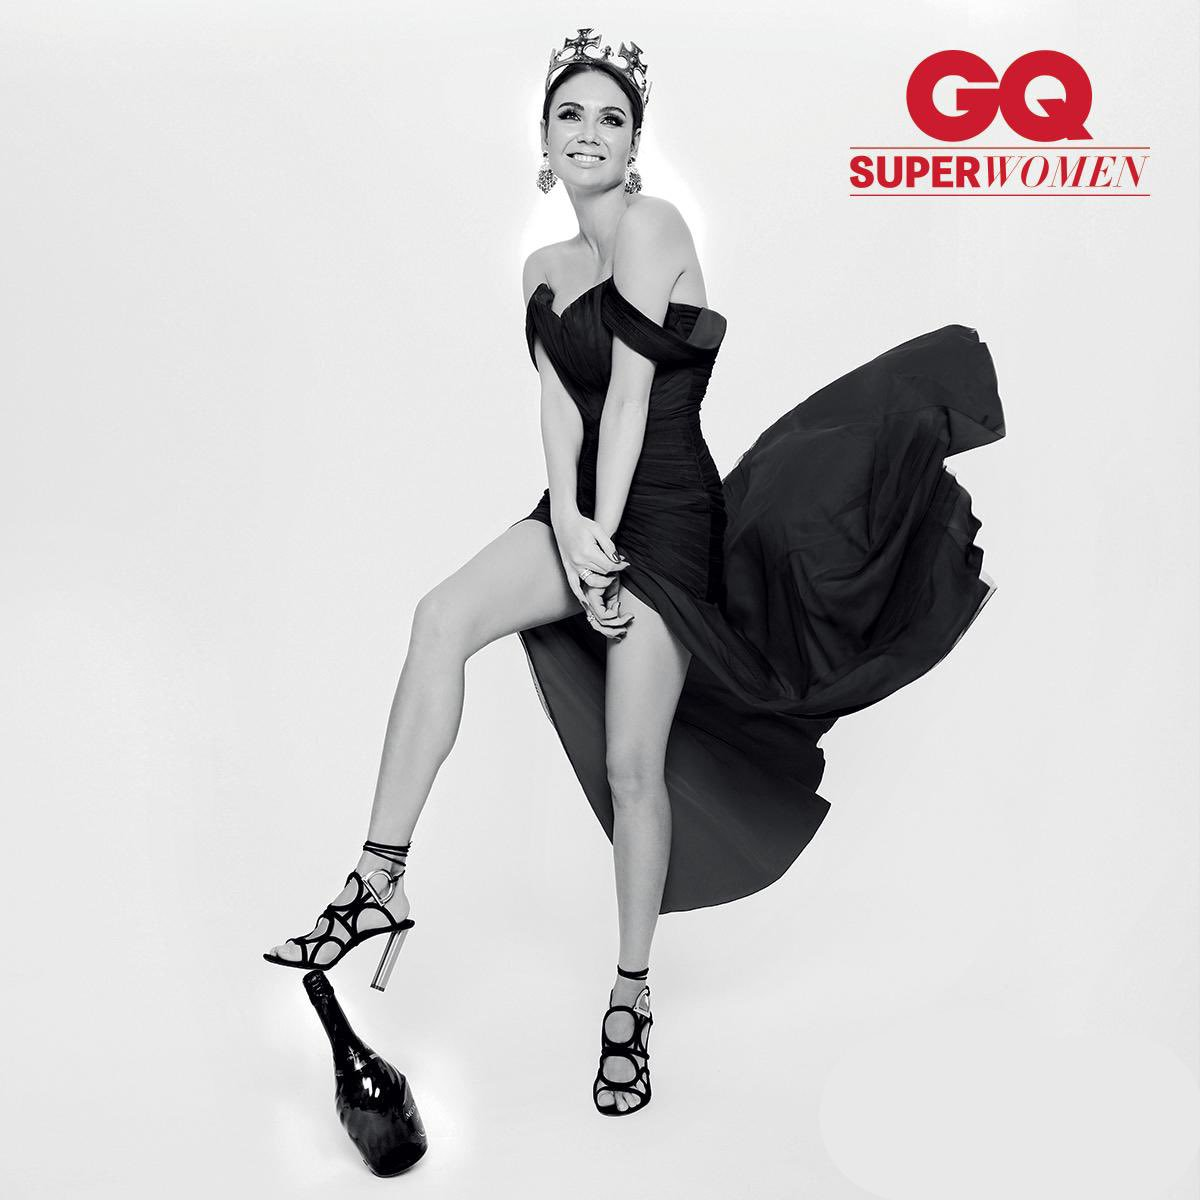 Вышел февральский GQ с #GQsuperwomen ???? https://t.co/jPLJgs5OyZ